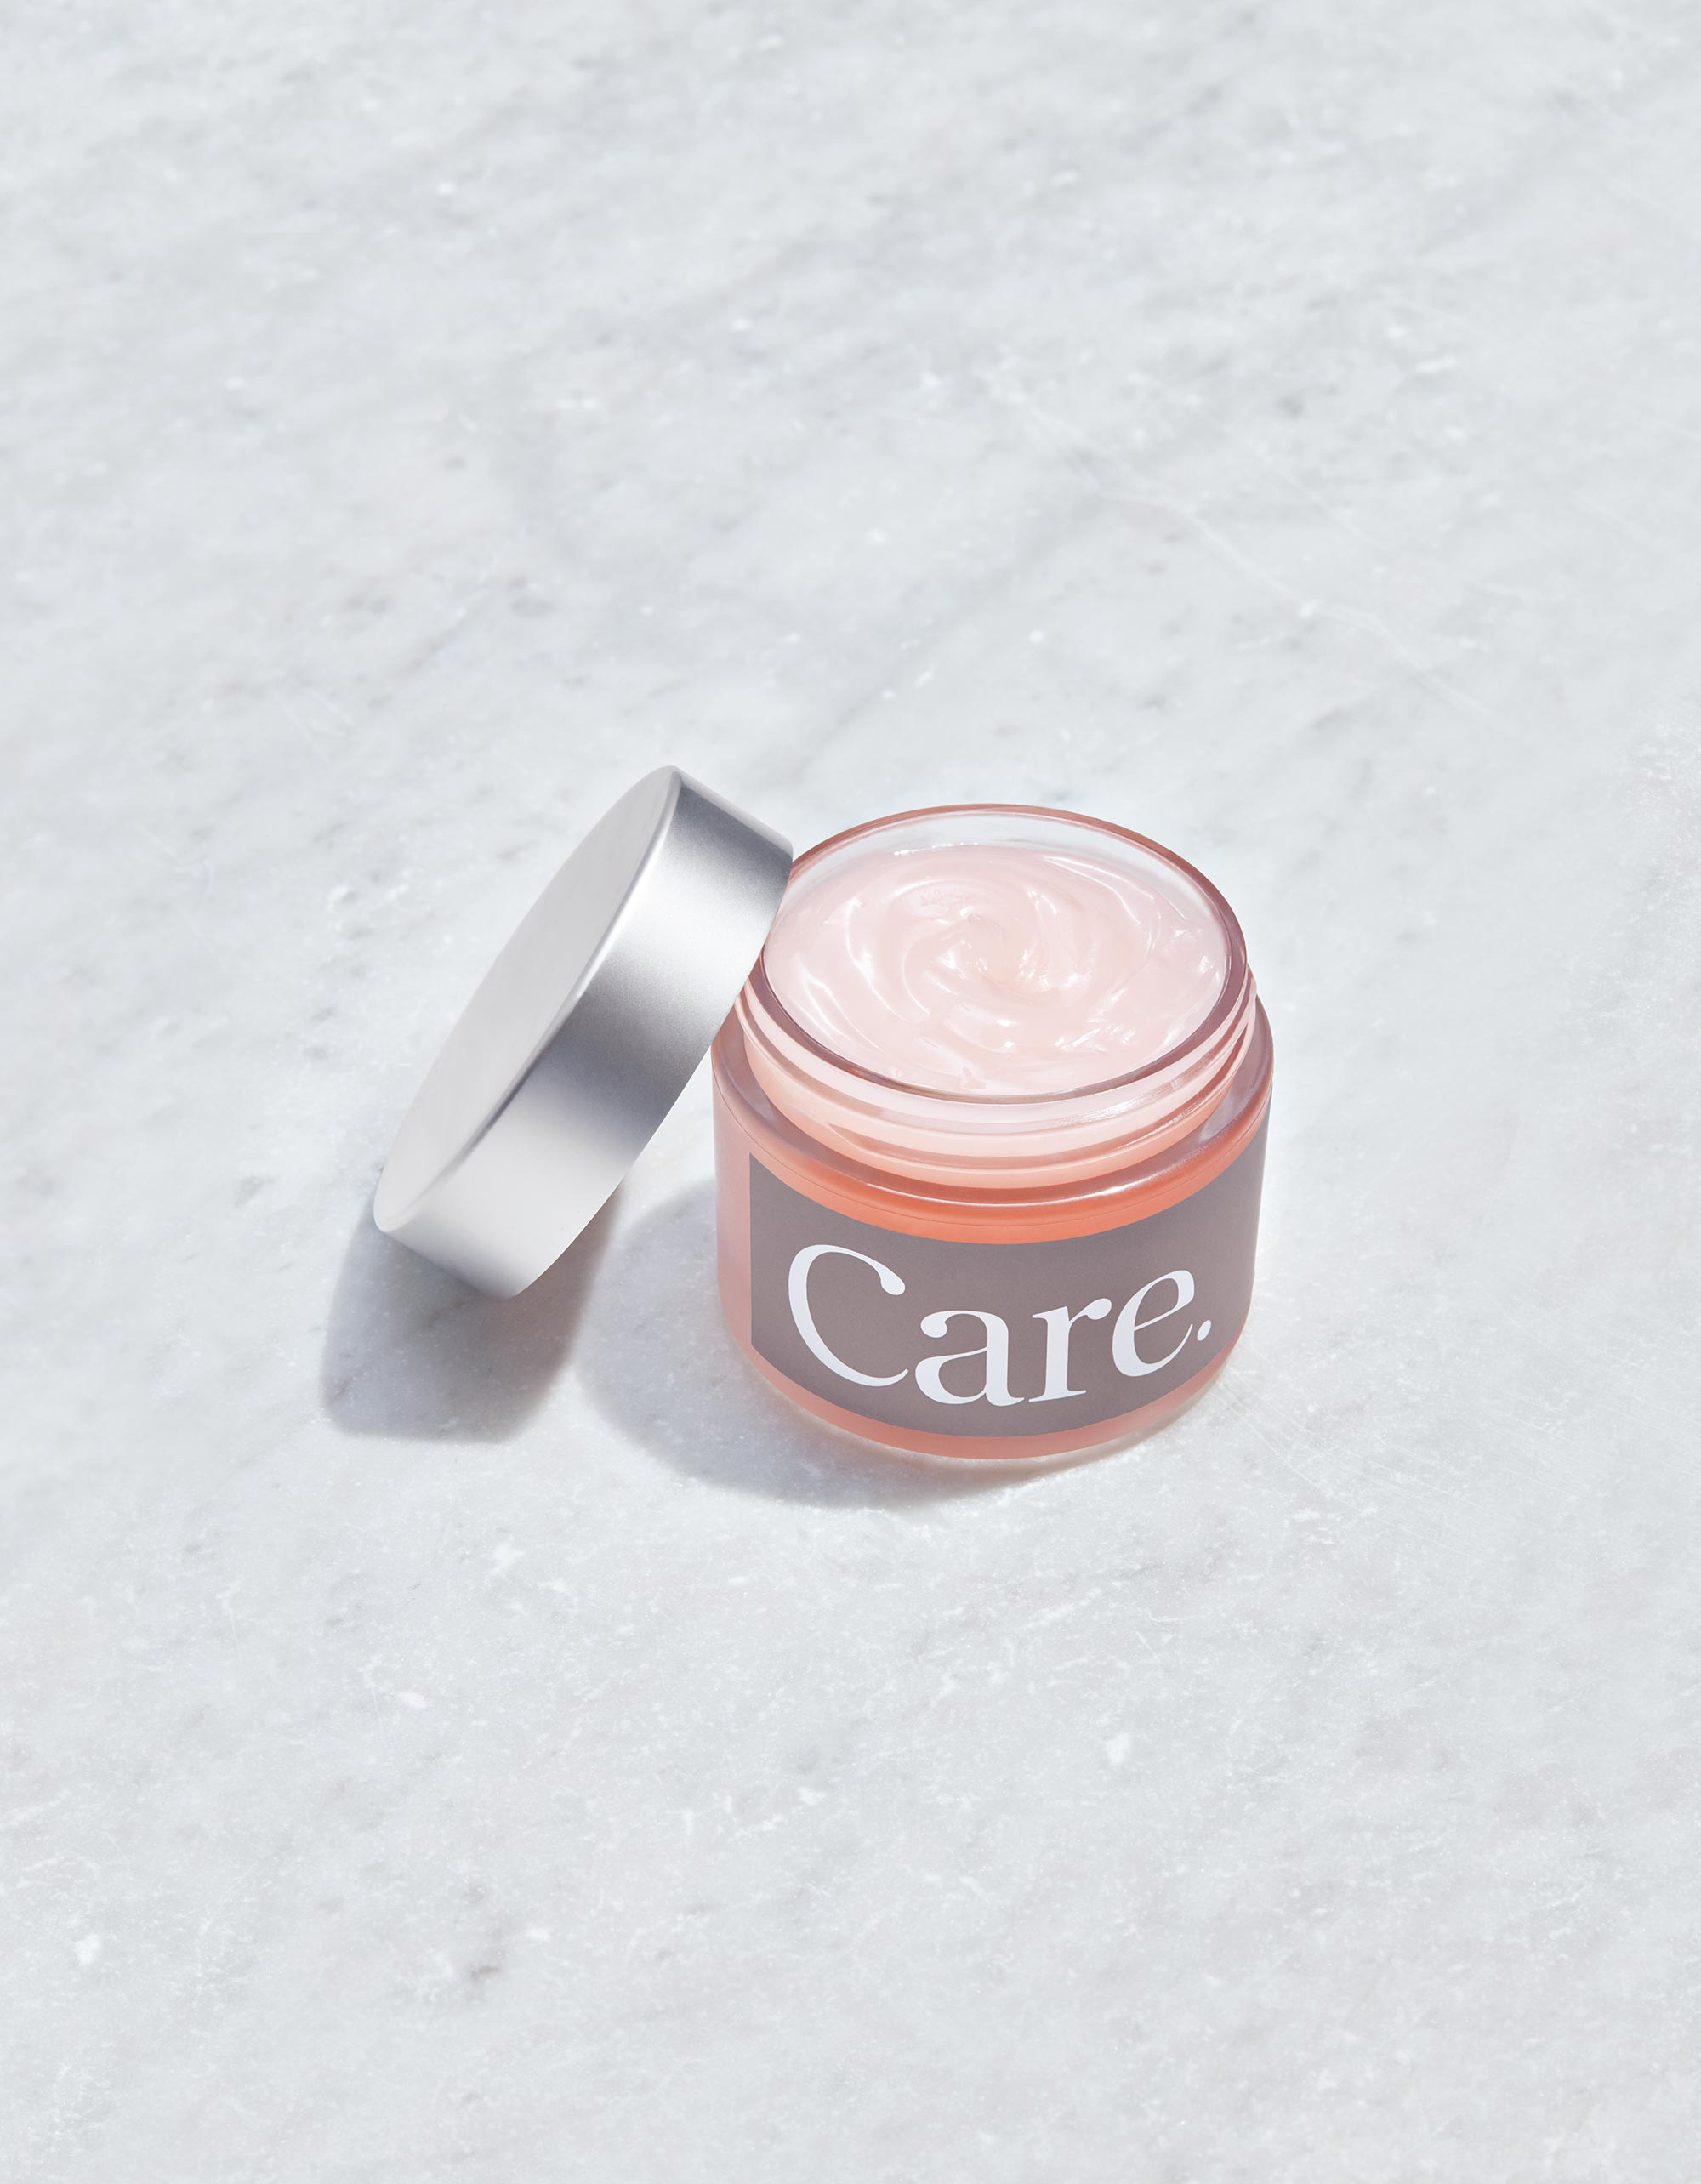 Care-Img2